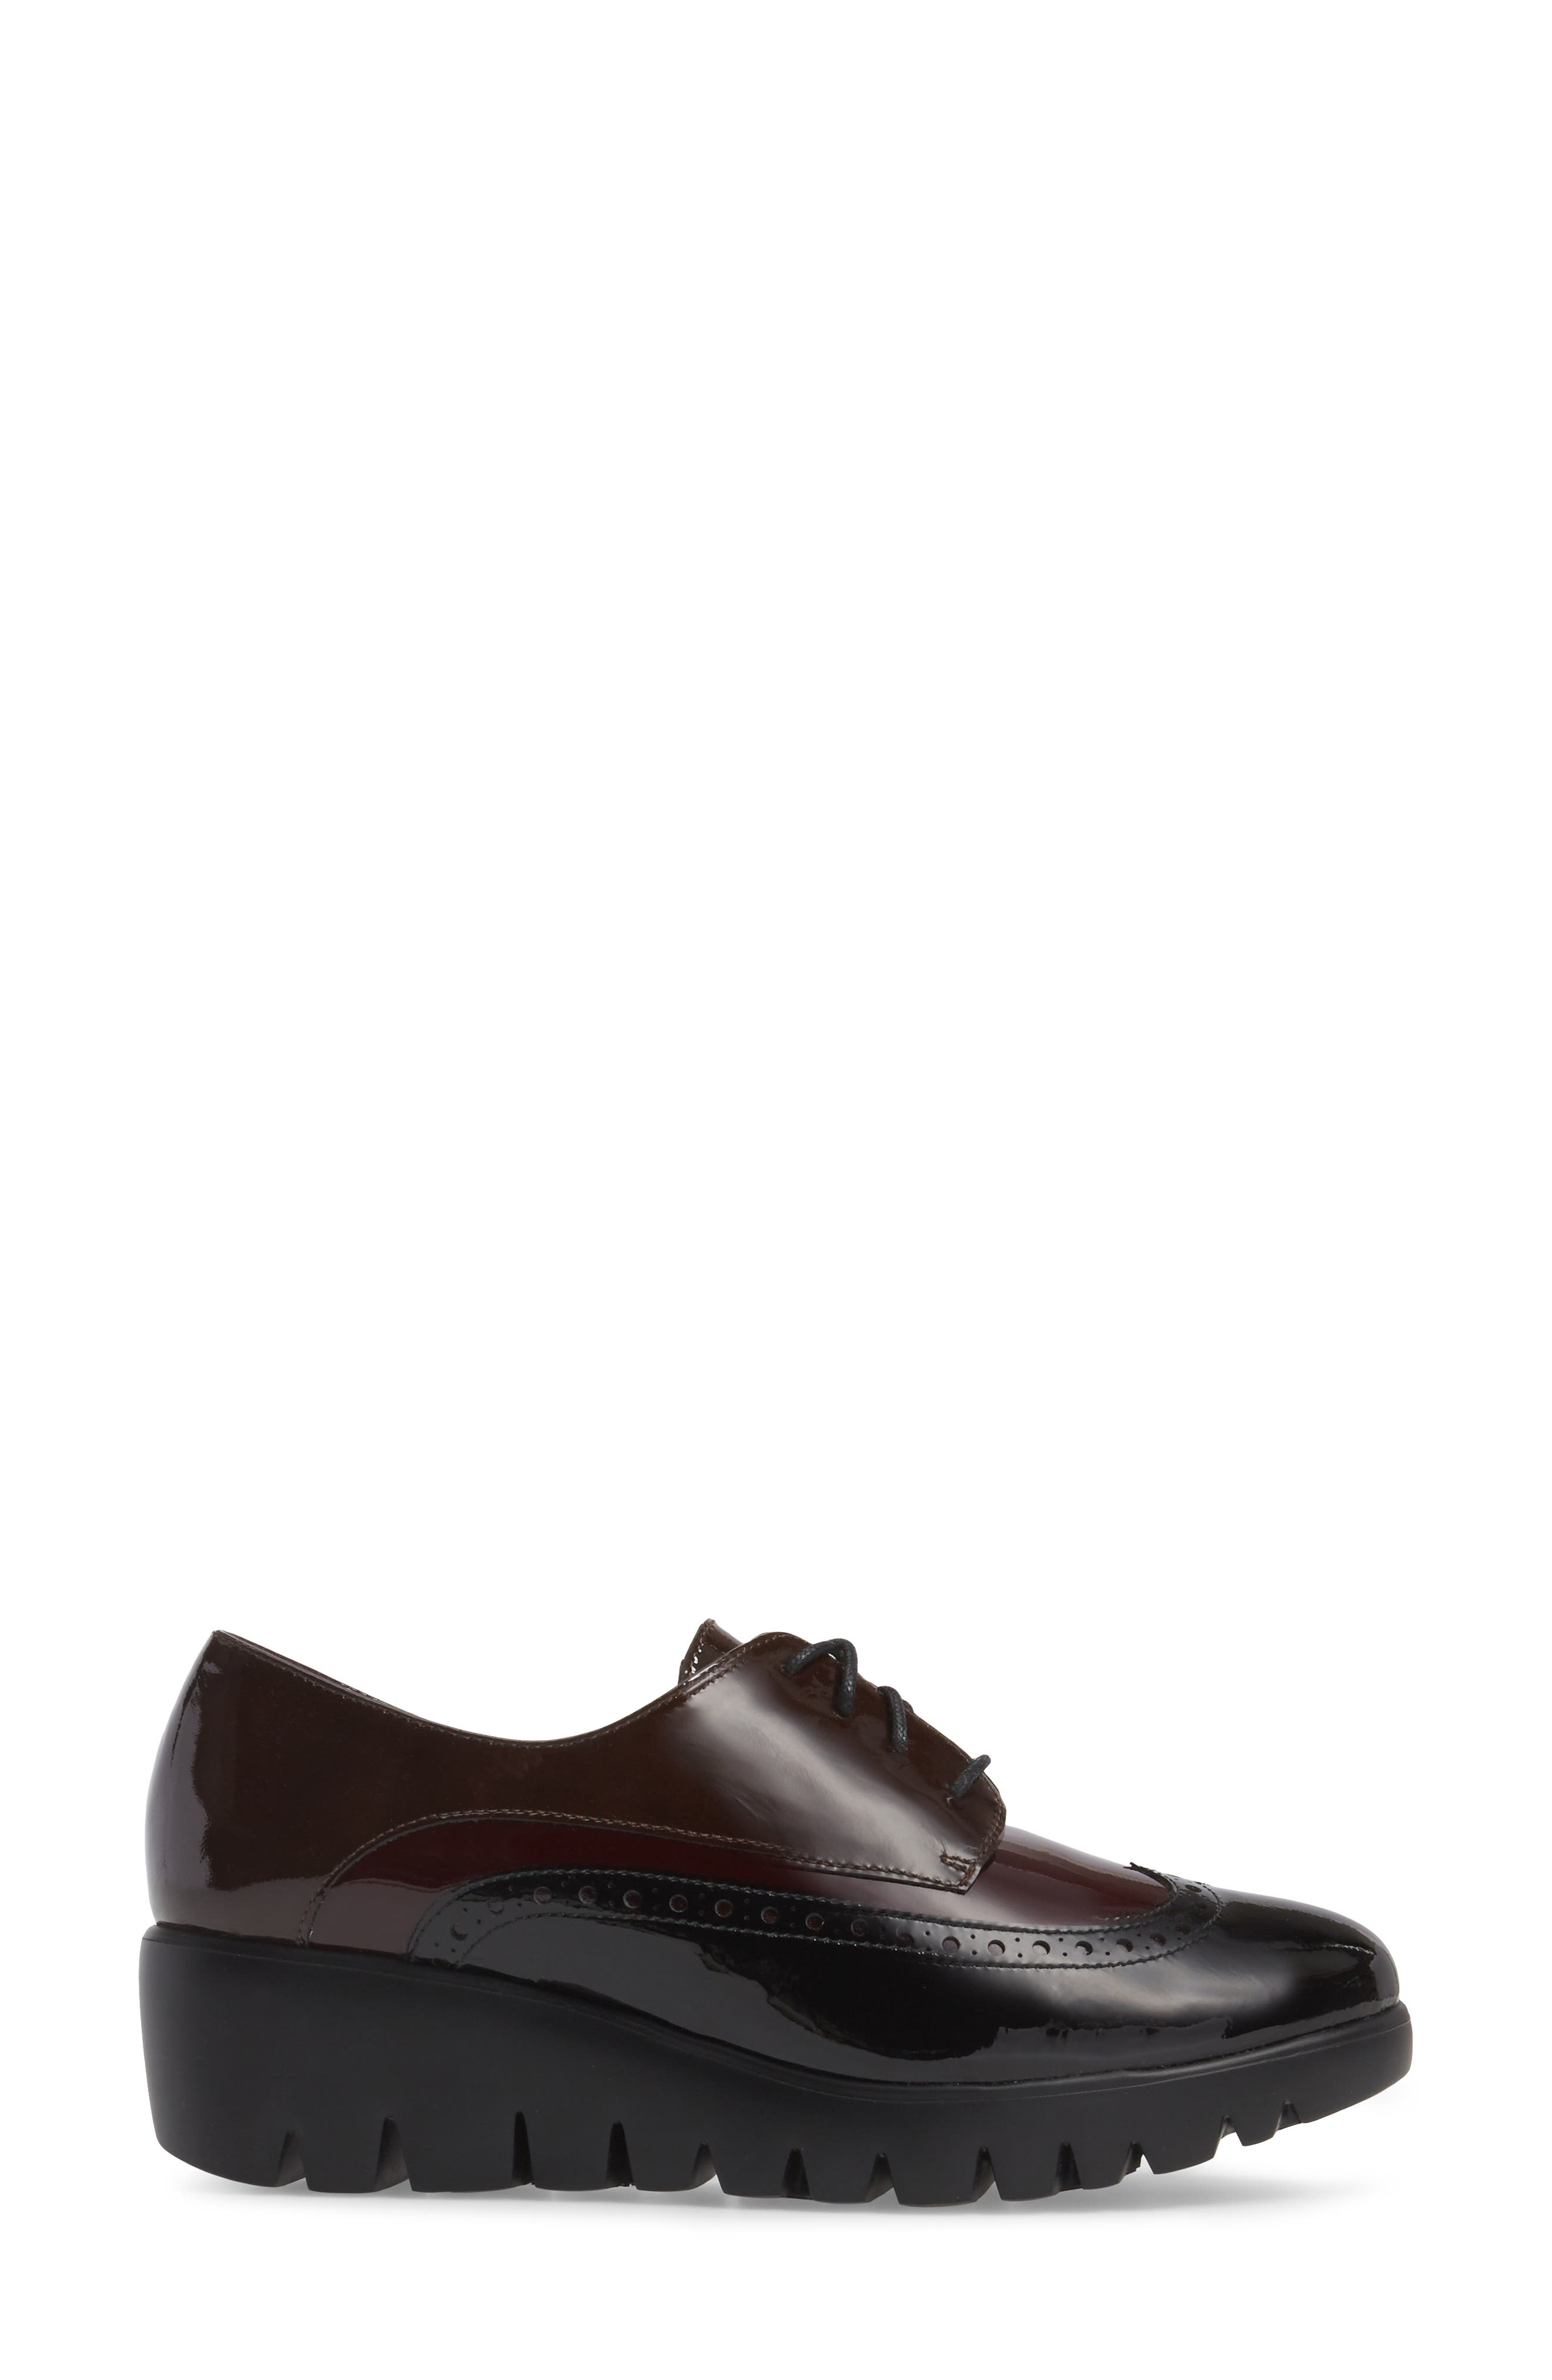 Wedge Wingtip Derby,                             Alternate thumbnail 3, color,                             Black/ Bordo Patent Leather